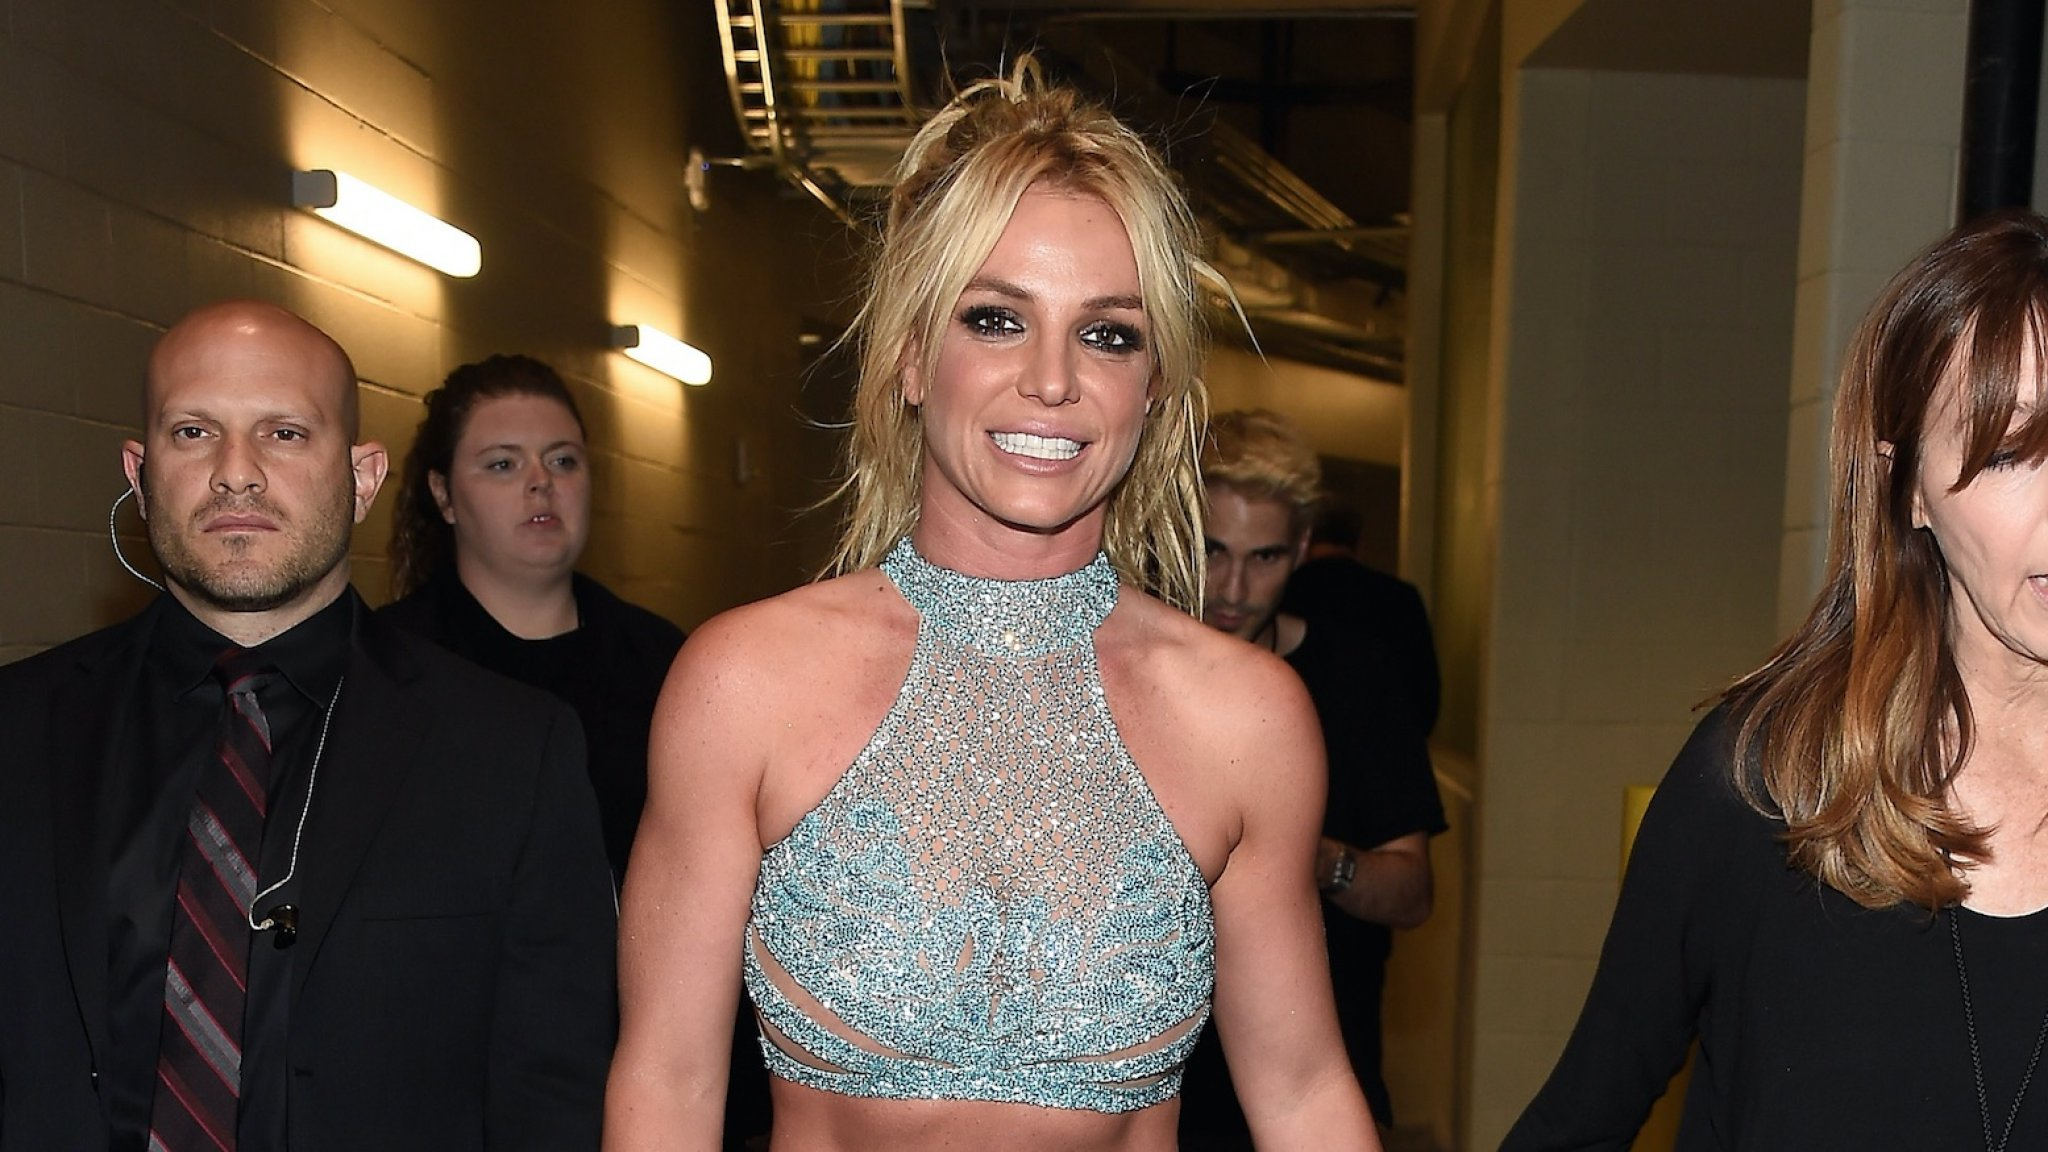 Britney Spears Explains Why She's Going Topless on Instagram